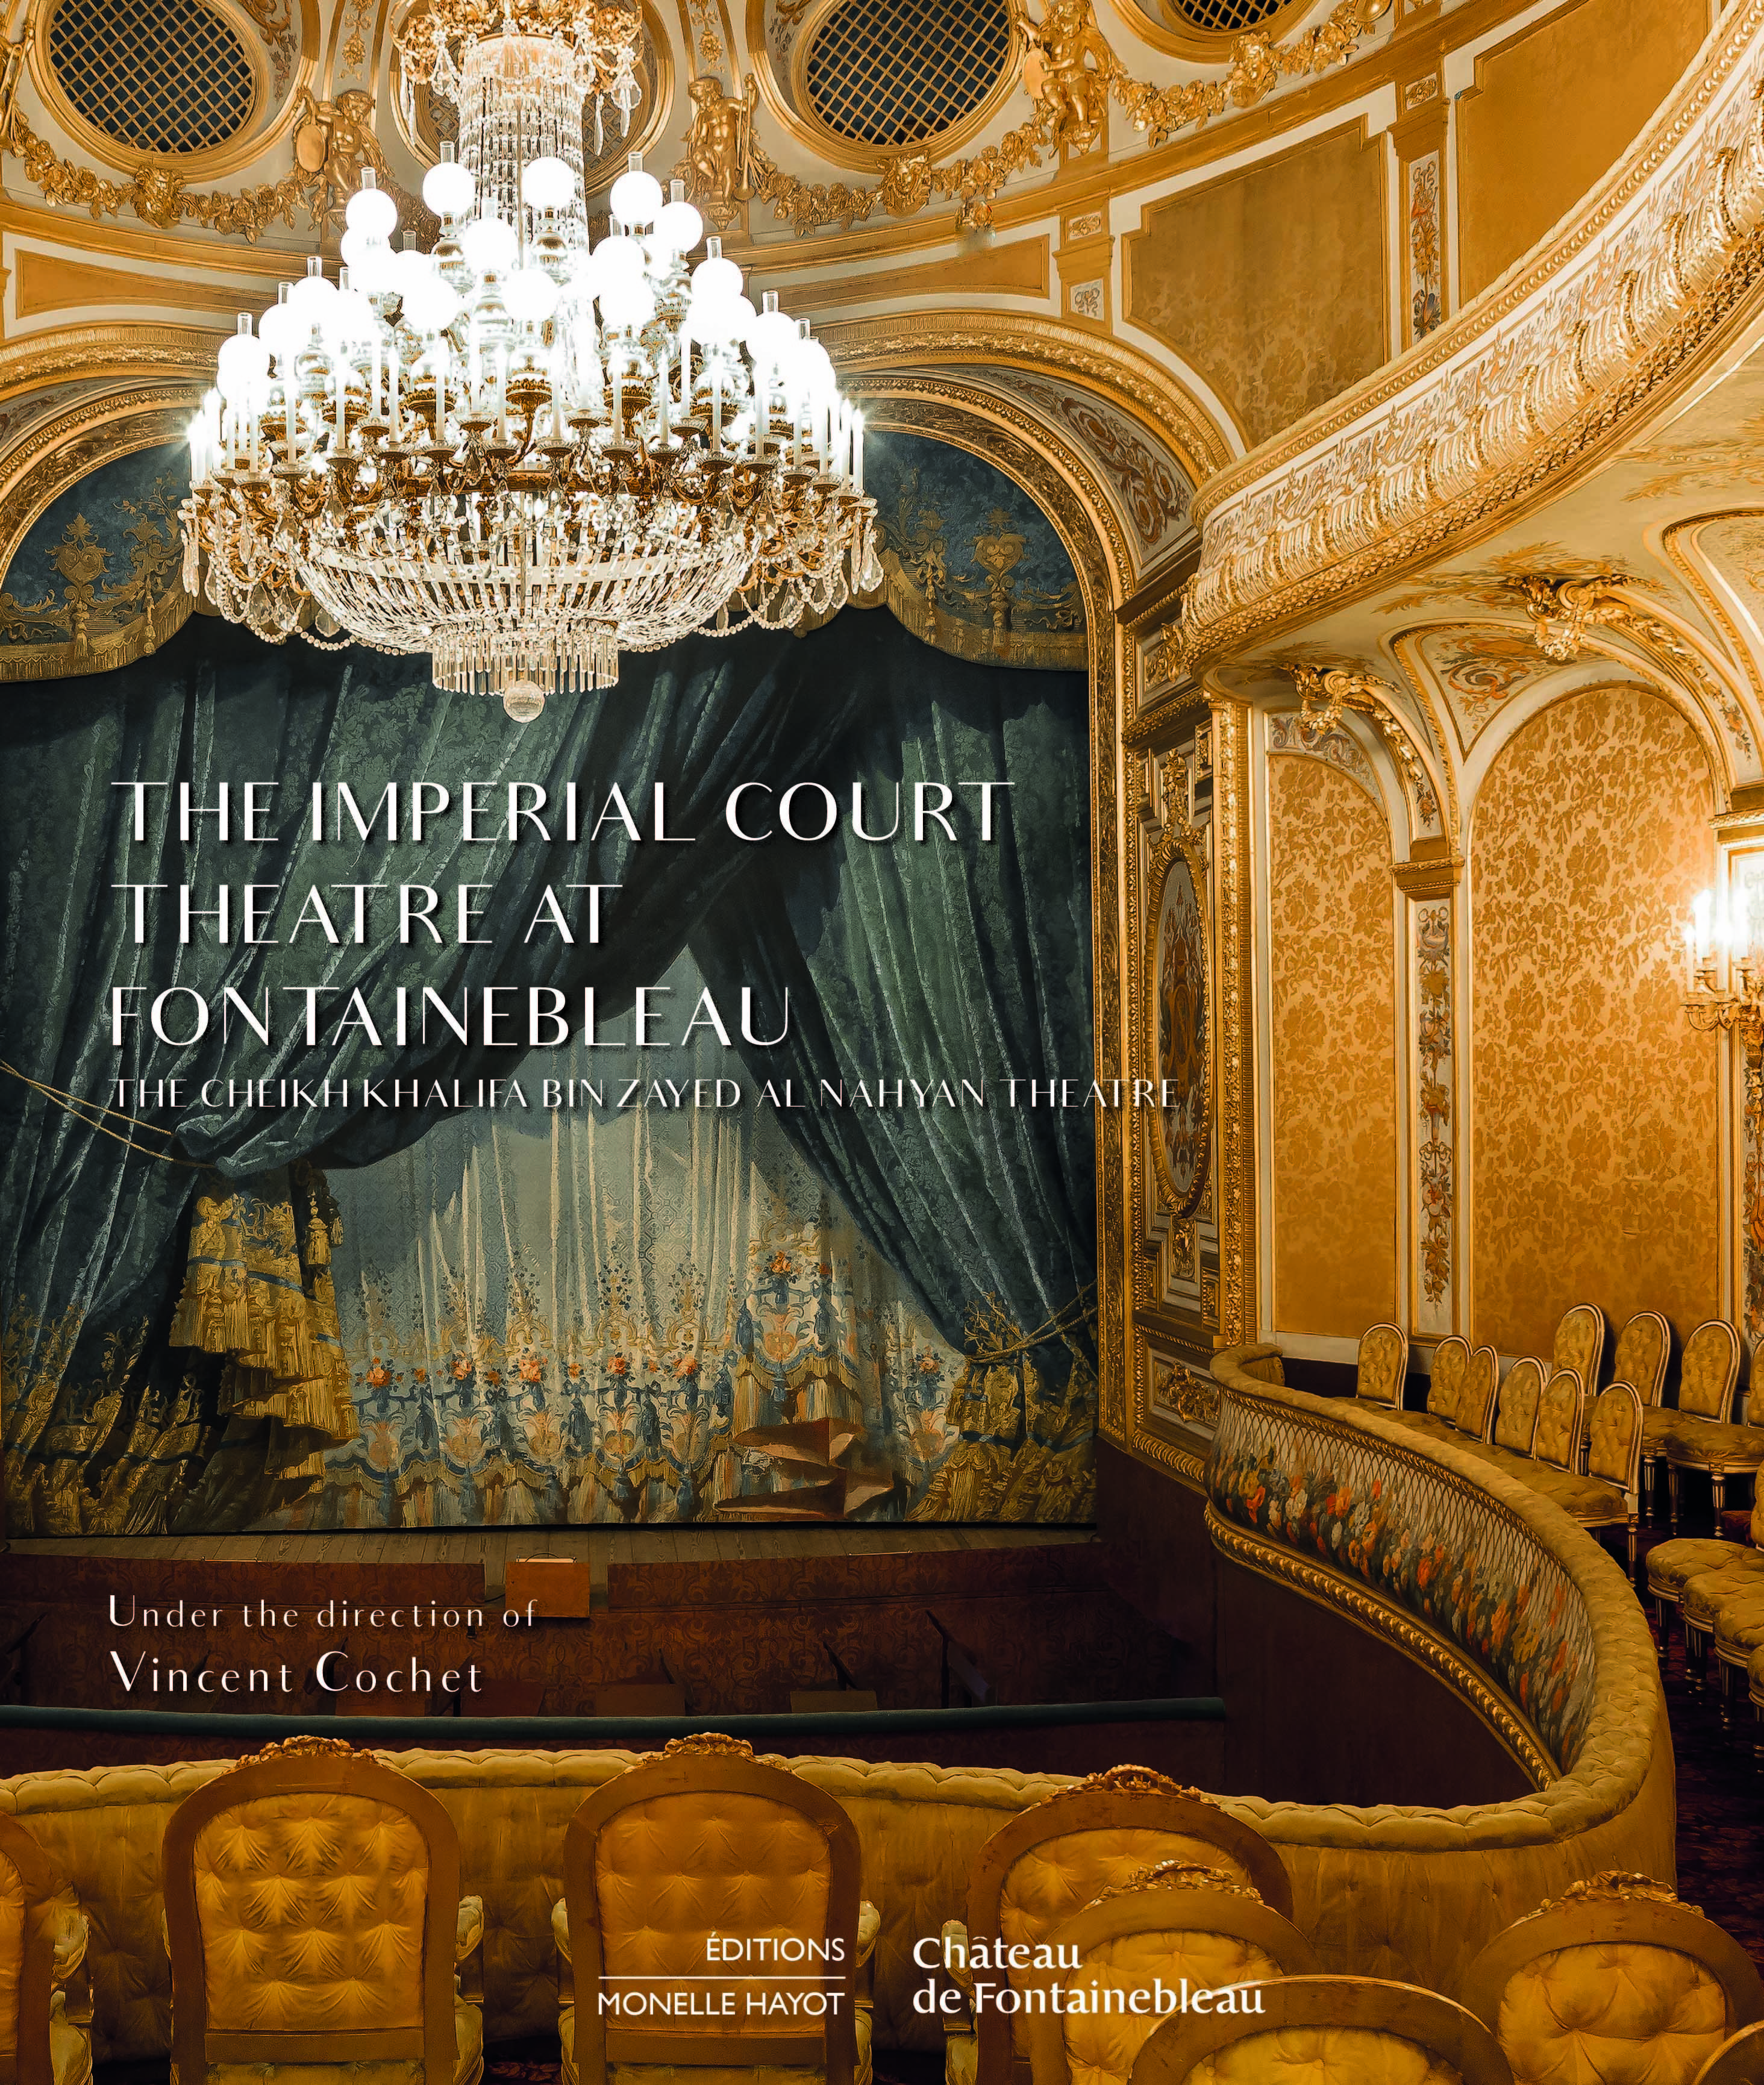 THE IMPERIAL COURT THEATRE AT FONTAINEBLEAU - THE CHEIKH KHALIFA BIN ZAYED AL NAHYAN THEATRE